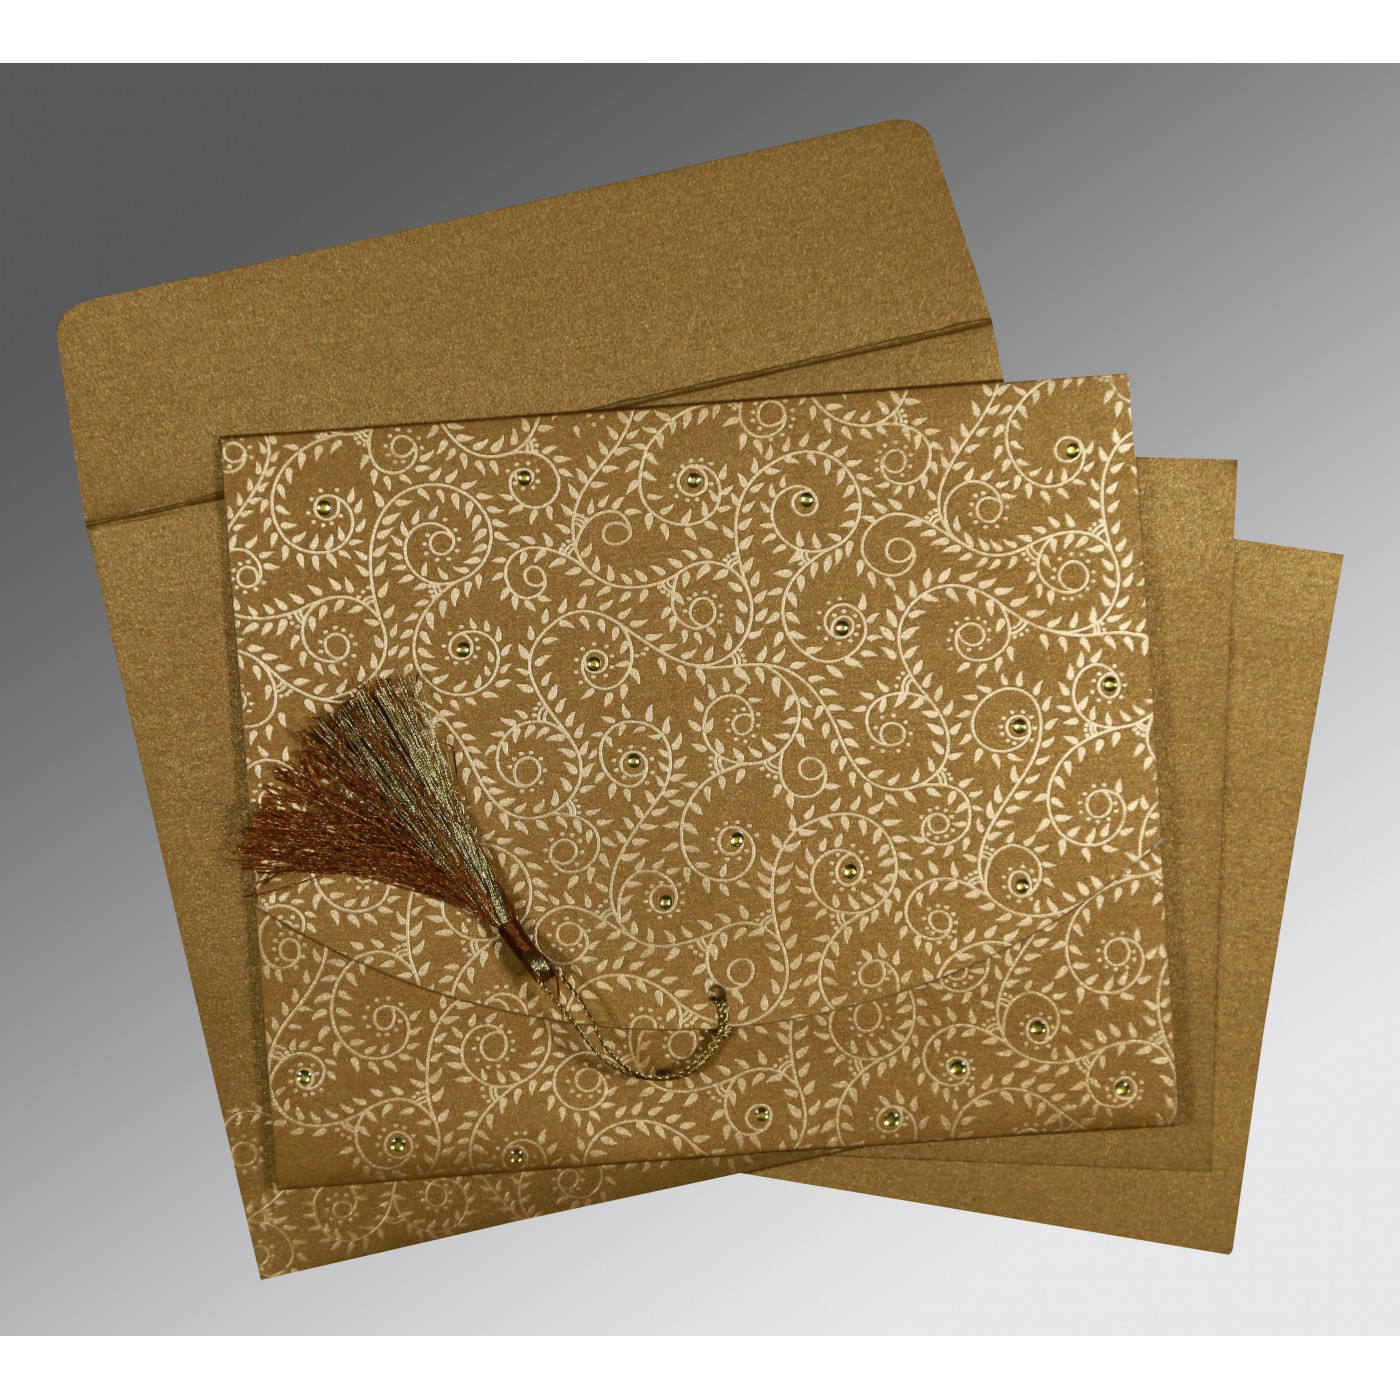 SATIN GOLD SHIMMERY SCREEN PRINTED WEDDING INVITATION : C-8217C - 123WeddingCards